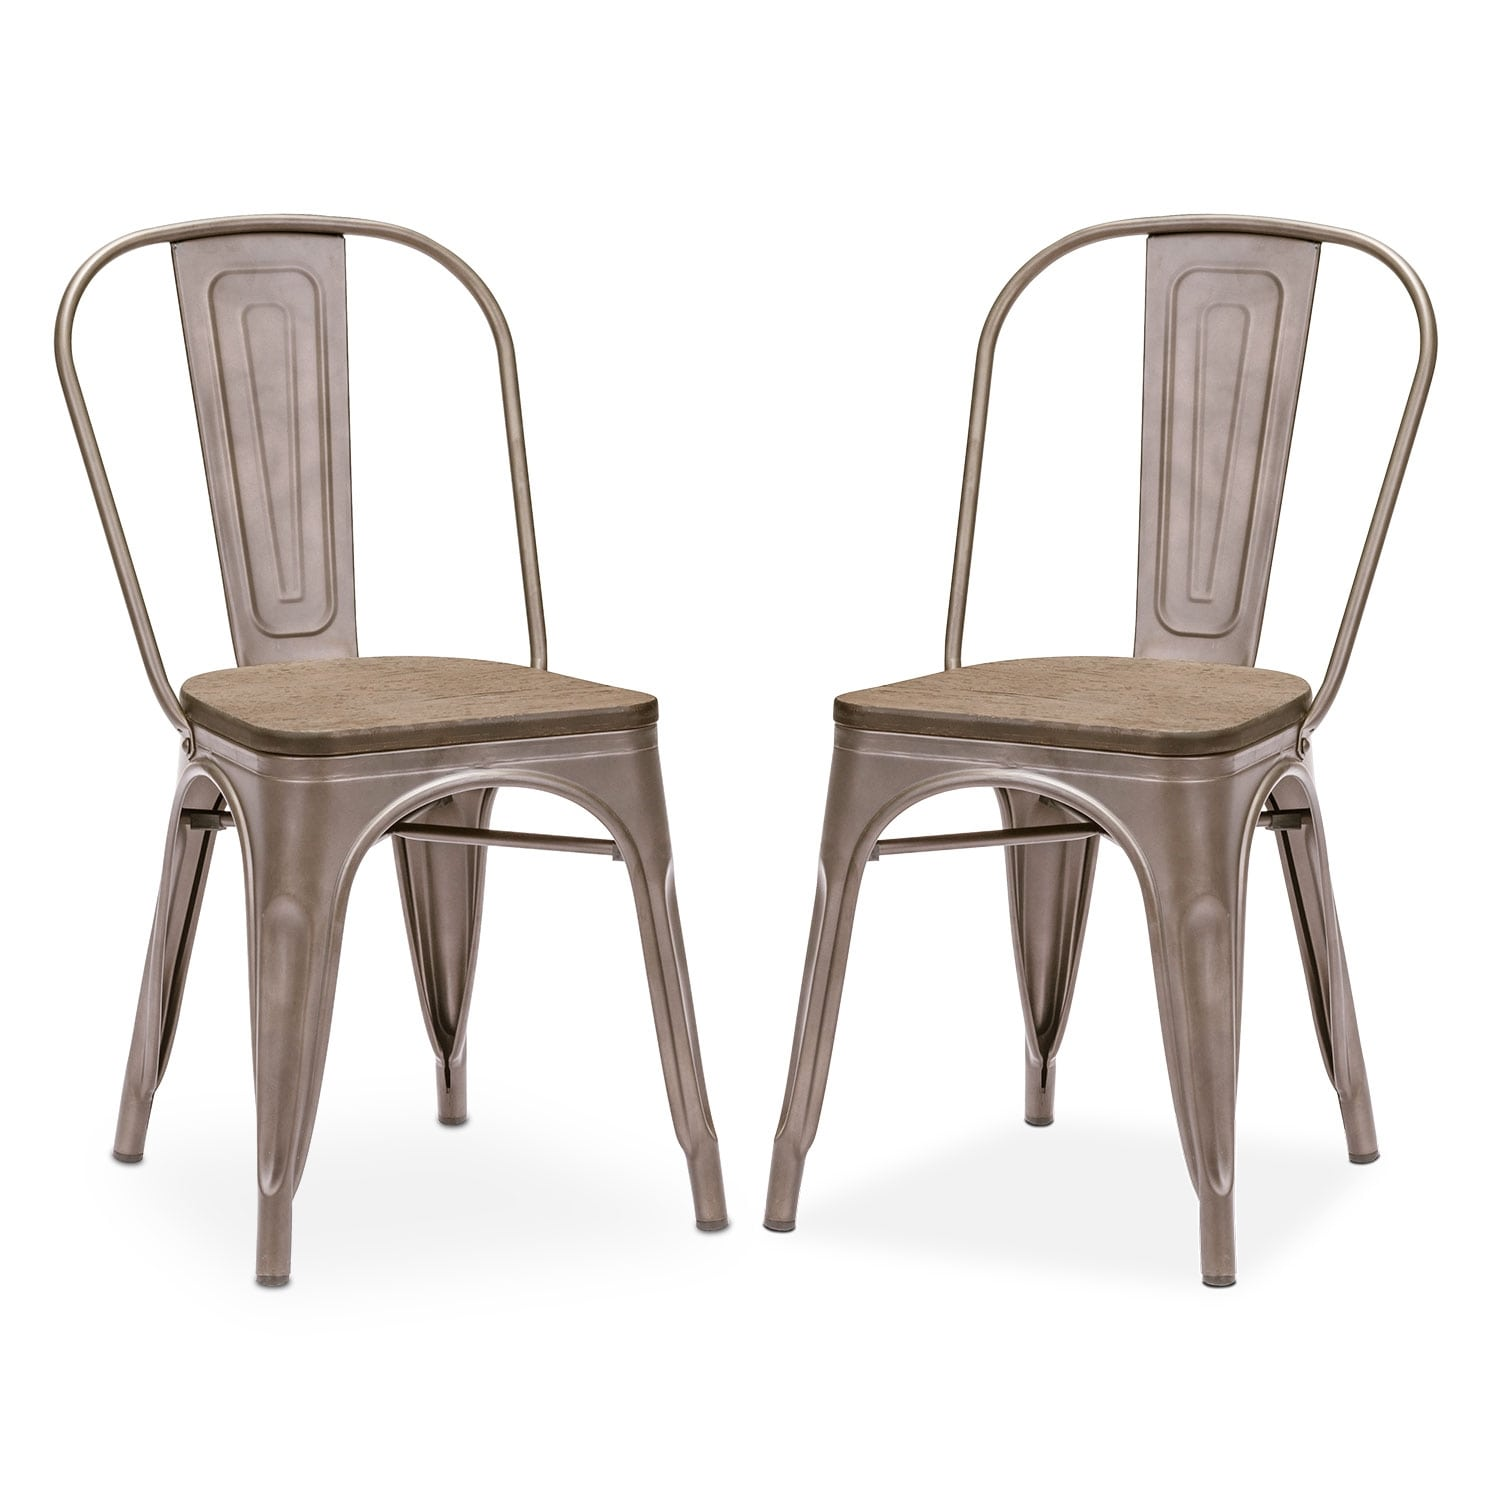 Rustica 2-Pack Chairs